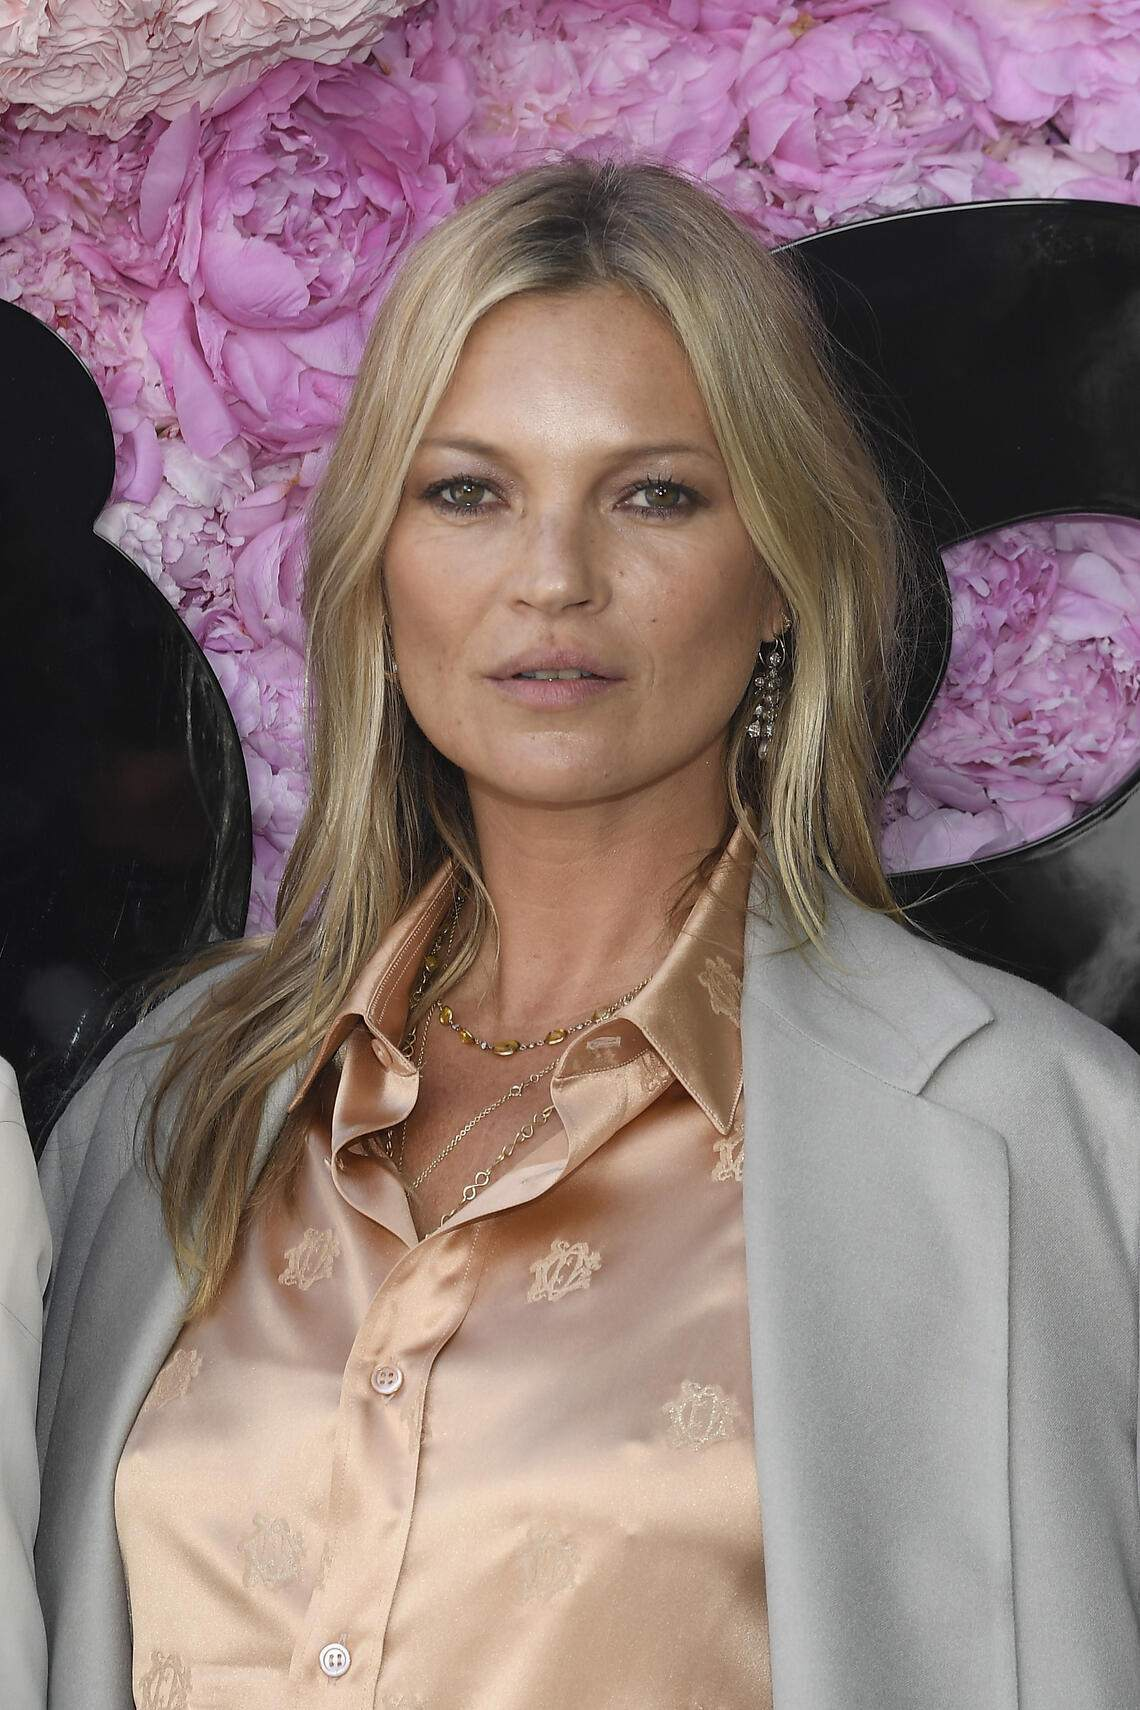 PARIS, FRANCE - JUNE 23:  Kate Moss attends the Dior Homme Menswear Spring/Summer 2019 show as part of Paris Fashion Week on June 23, 2018 in Paris, France.  (Photo by Pascal Le Segretain/Getty Images)